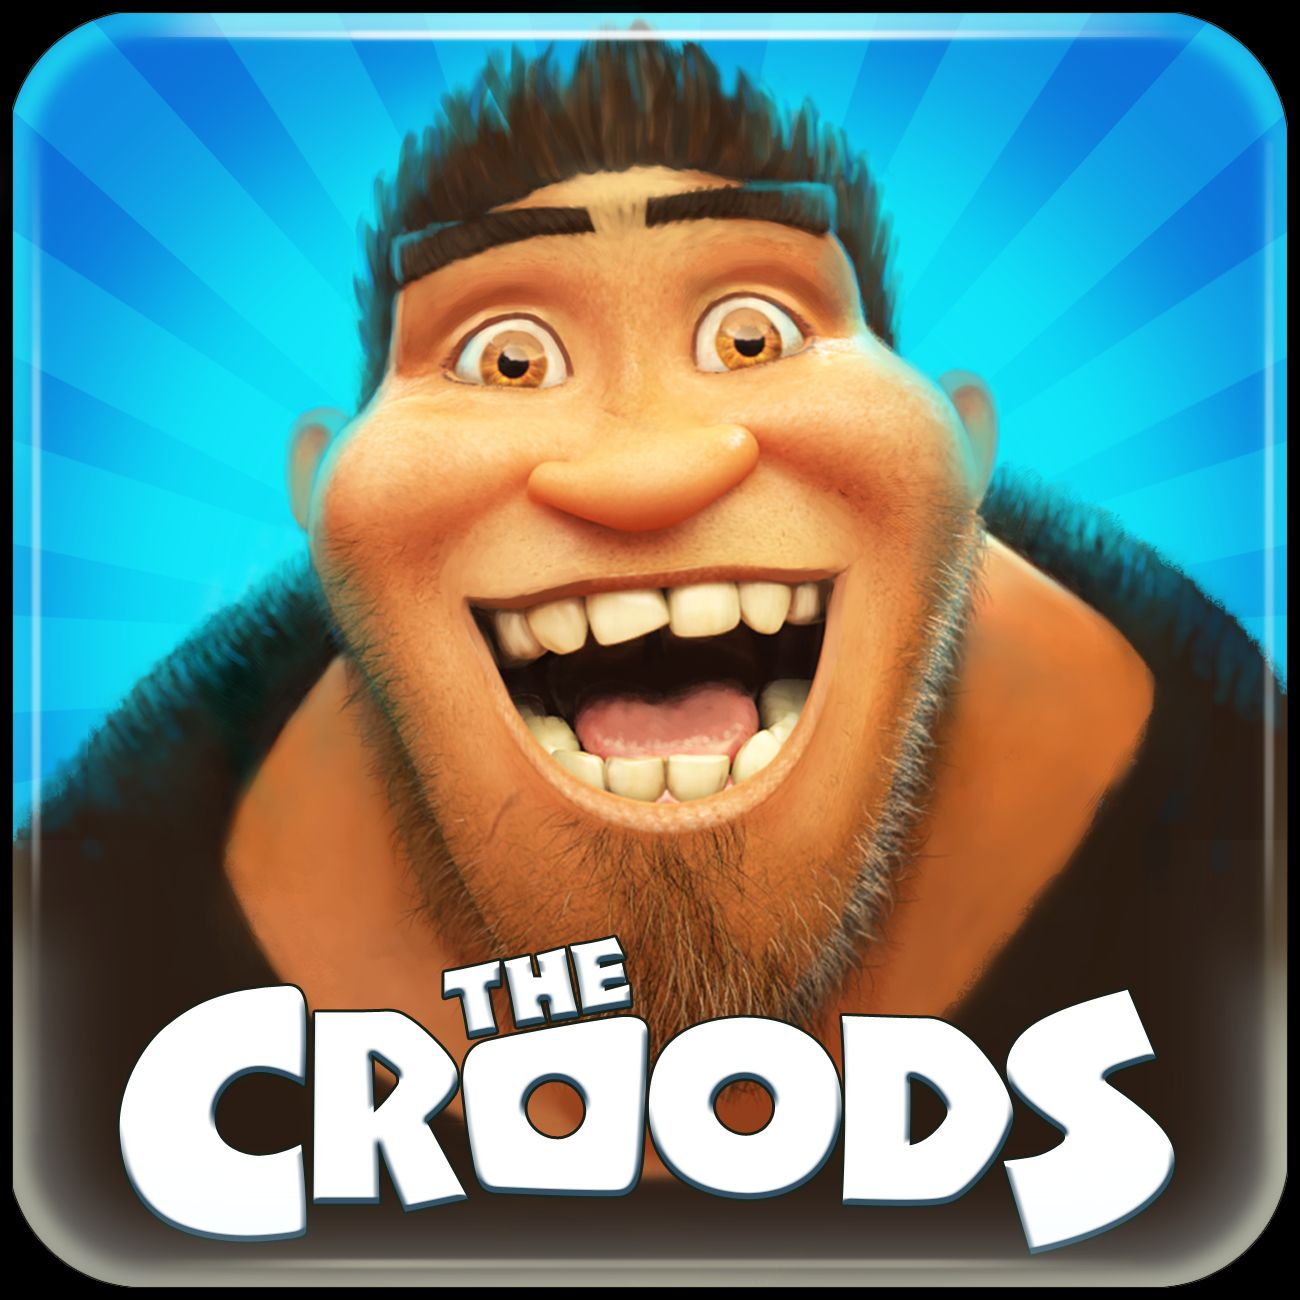 Rovio working on official The Croods game for iOS and Android